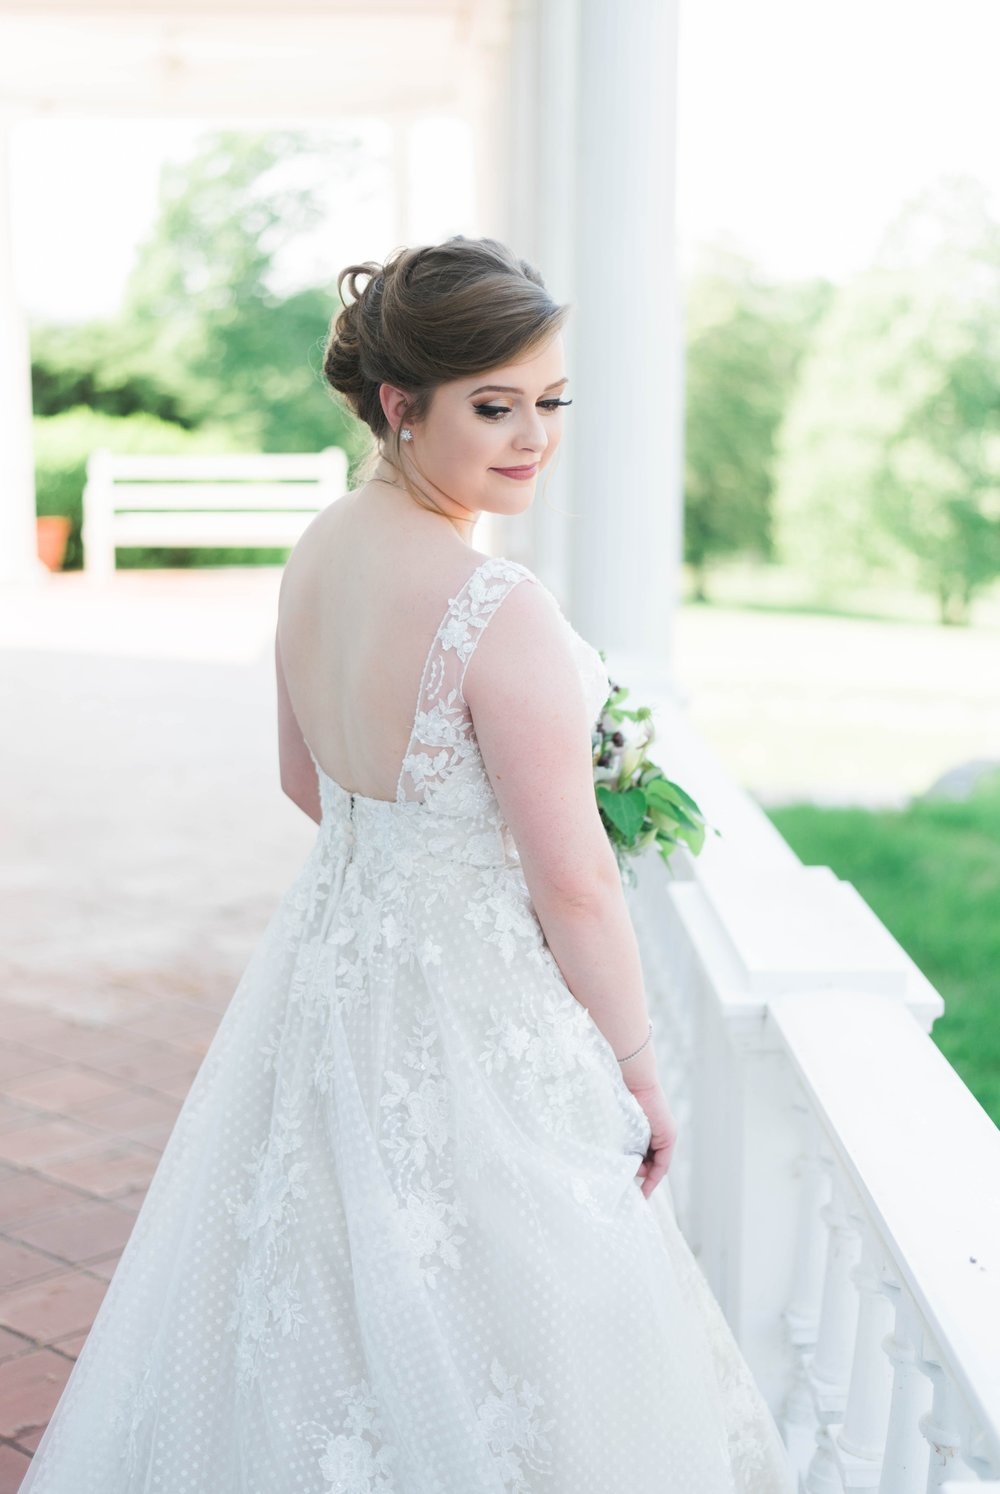 Jillian+Abi_OakridgeEstate_Wedding_VirginiaWeddingPhotographer_SpringWedding 37.jpg